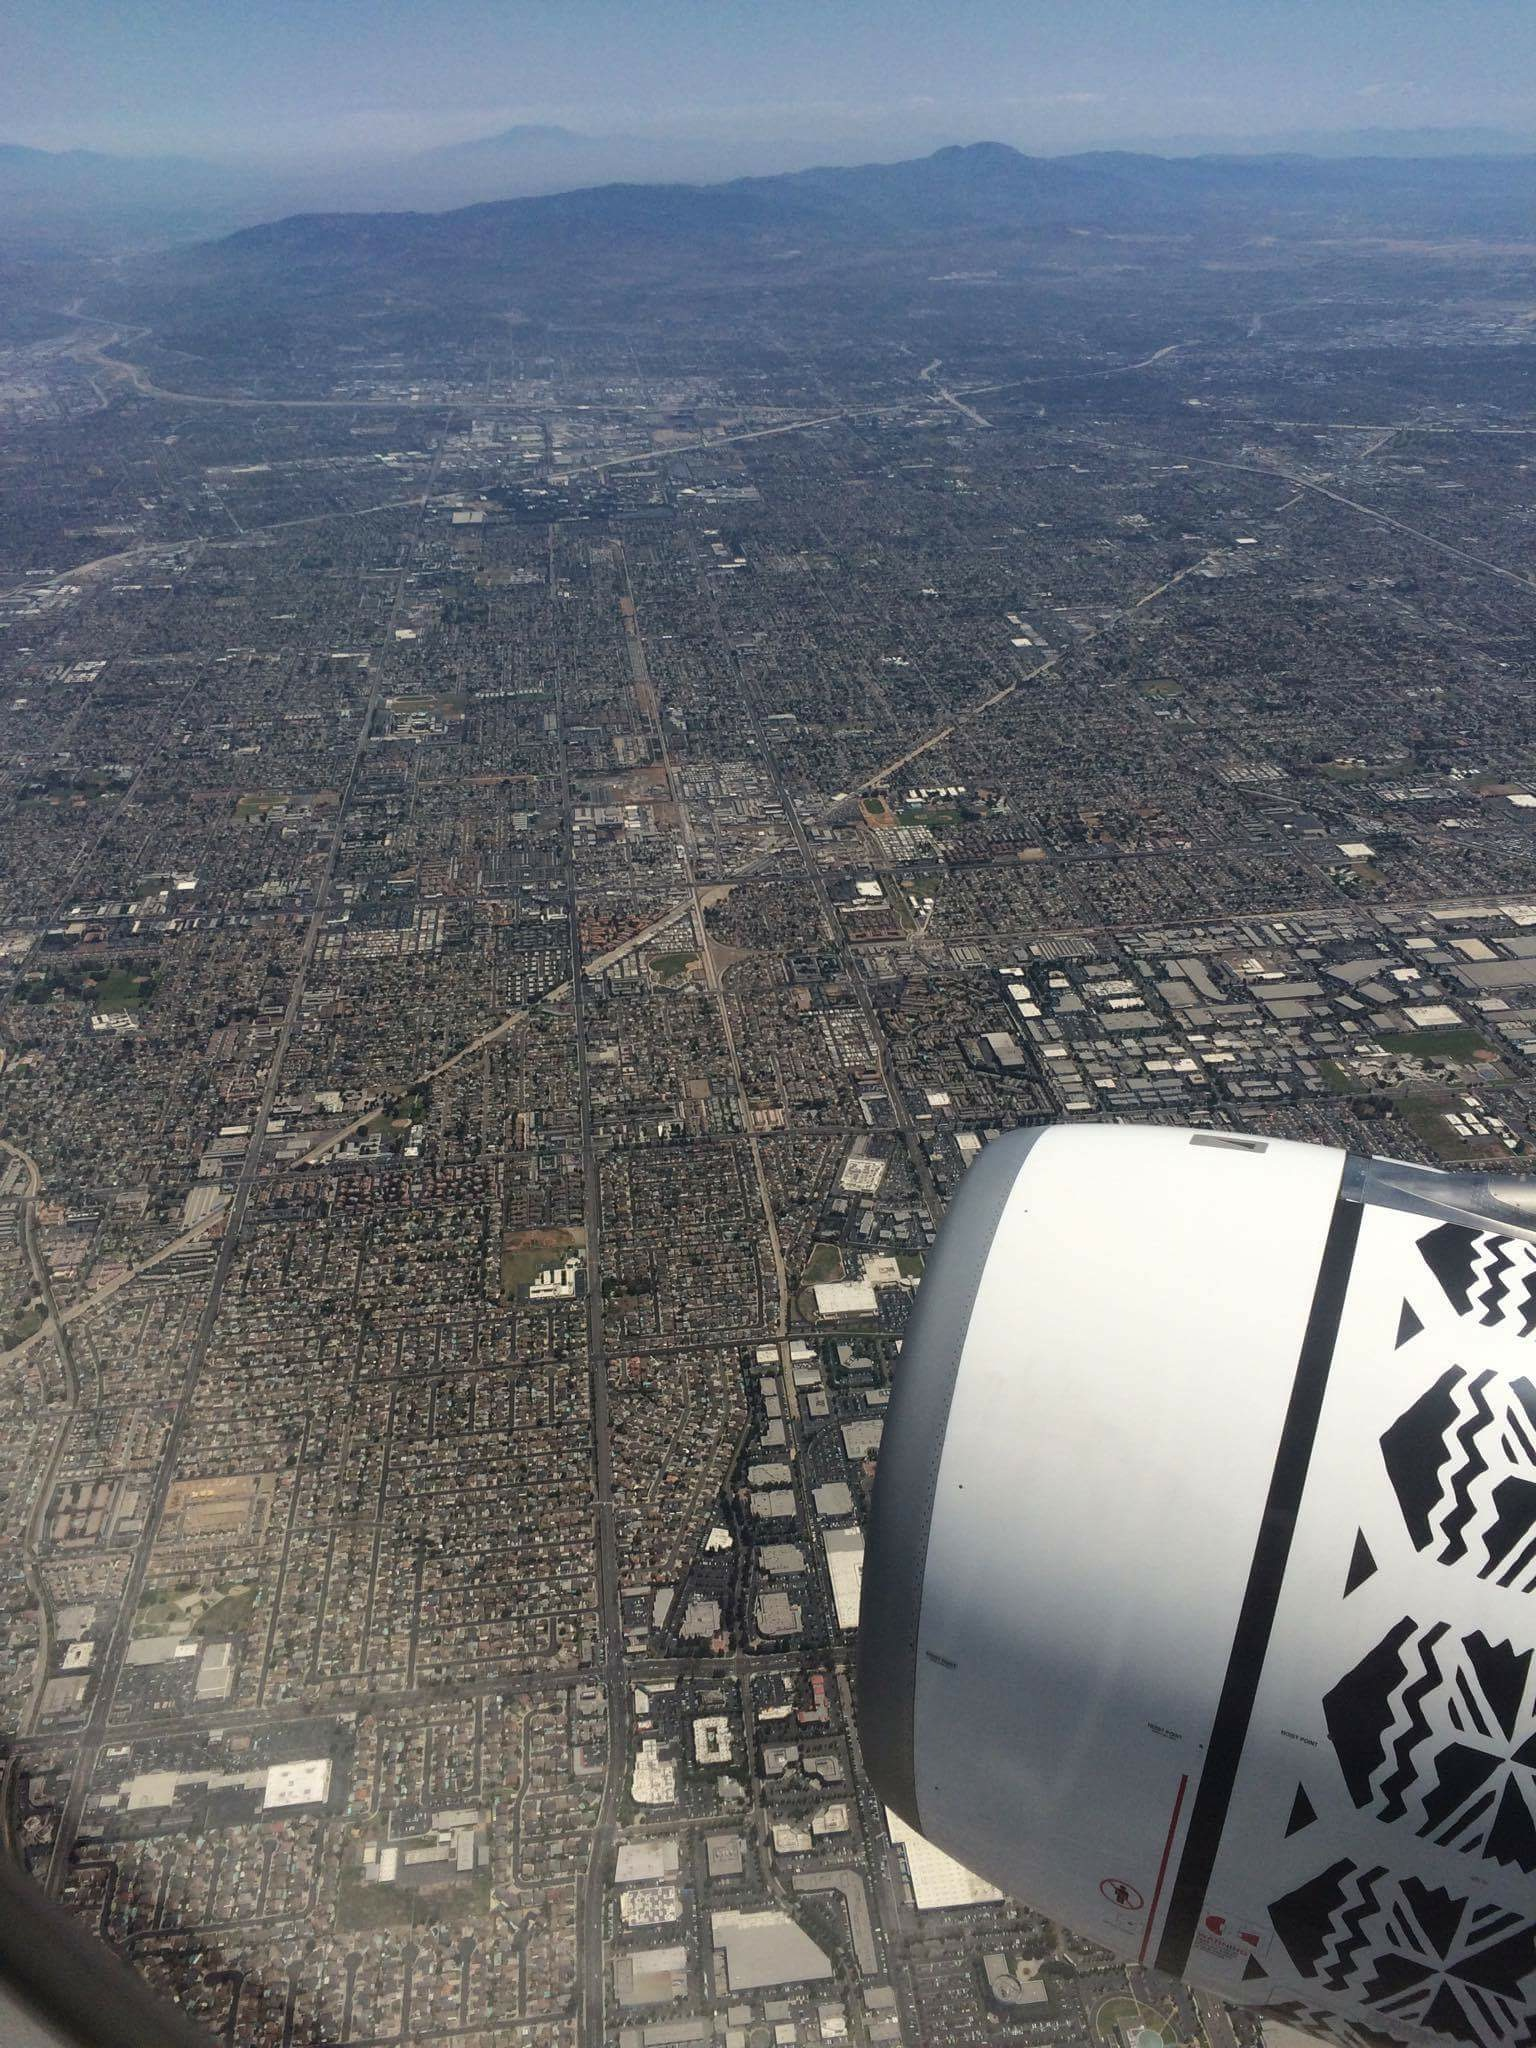 LA from the sky